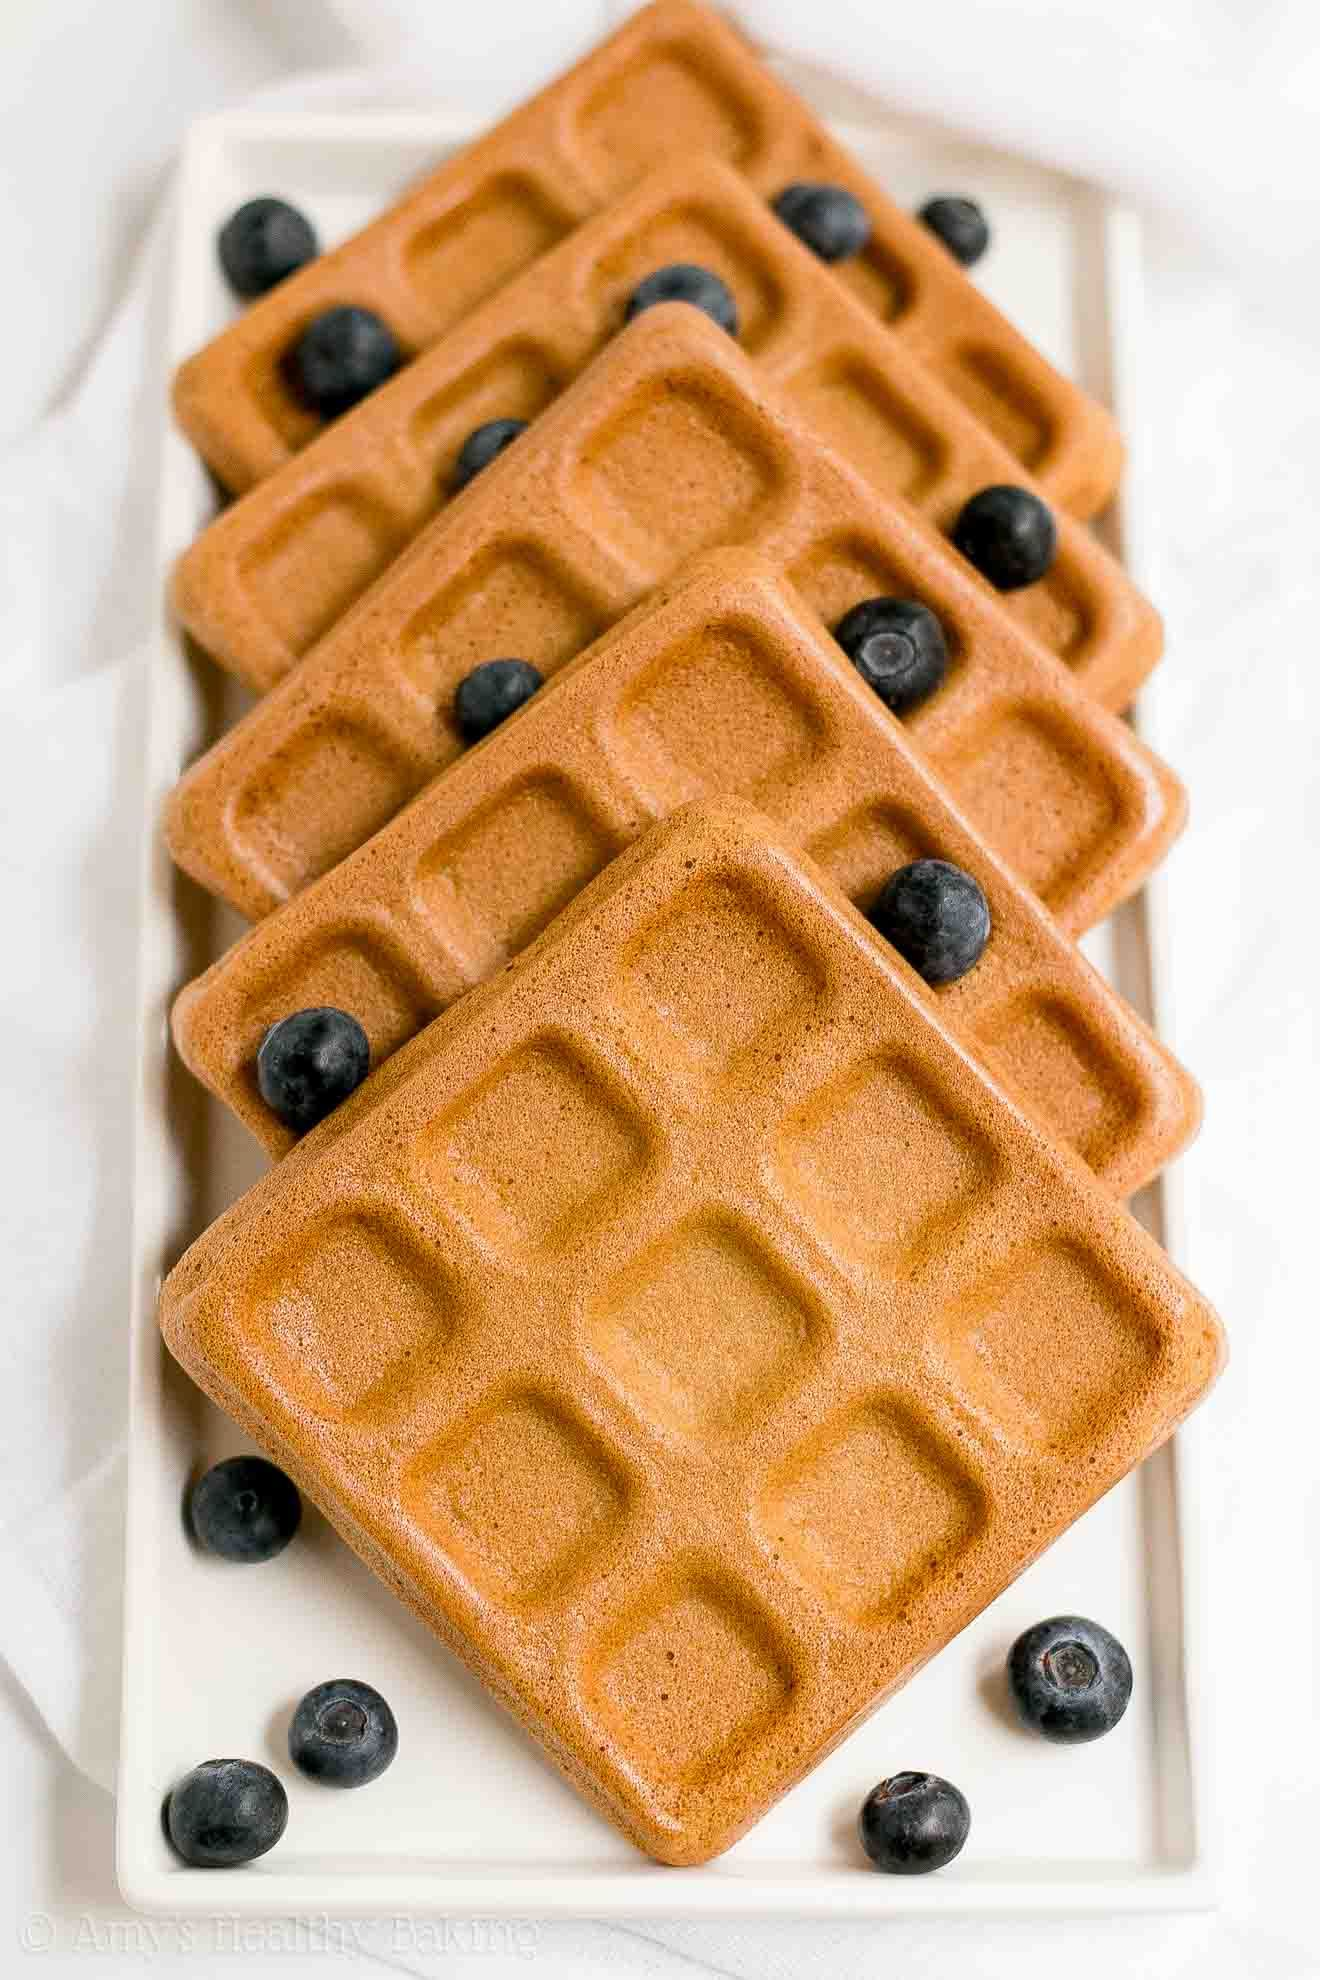 The Best Healthy Buttermilk Waffles Only 102 Calories They Re Truly Perfect Light Fluffy Crispy On The Waffle Recipes Buttermilk Waffles Healthy Waffles